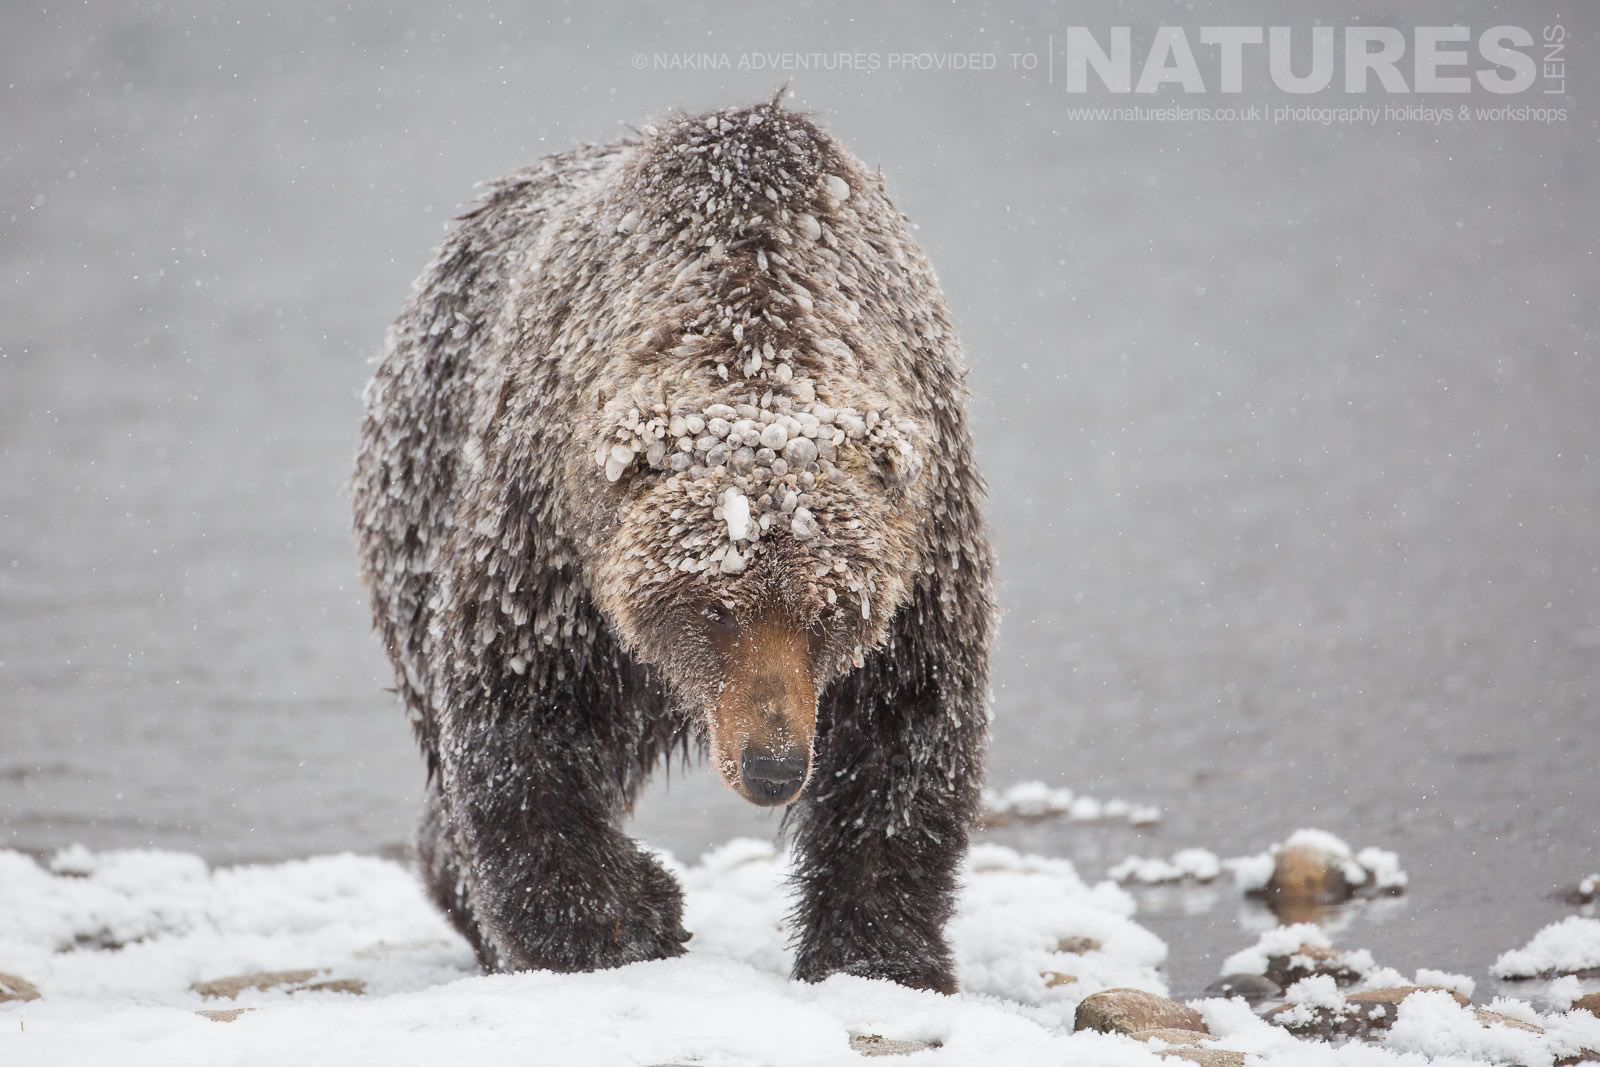 One Of The Grizzly Bears Emerges From The Fishing Branch River Covered In Ice Typical Of The Kind Of Image That May Be Captured On The Ice Bears Of The Yukon Photographic Holiday